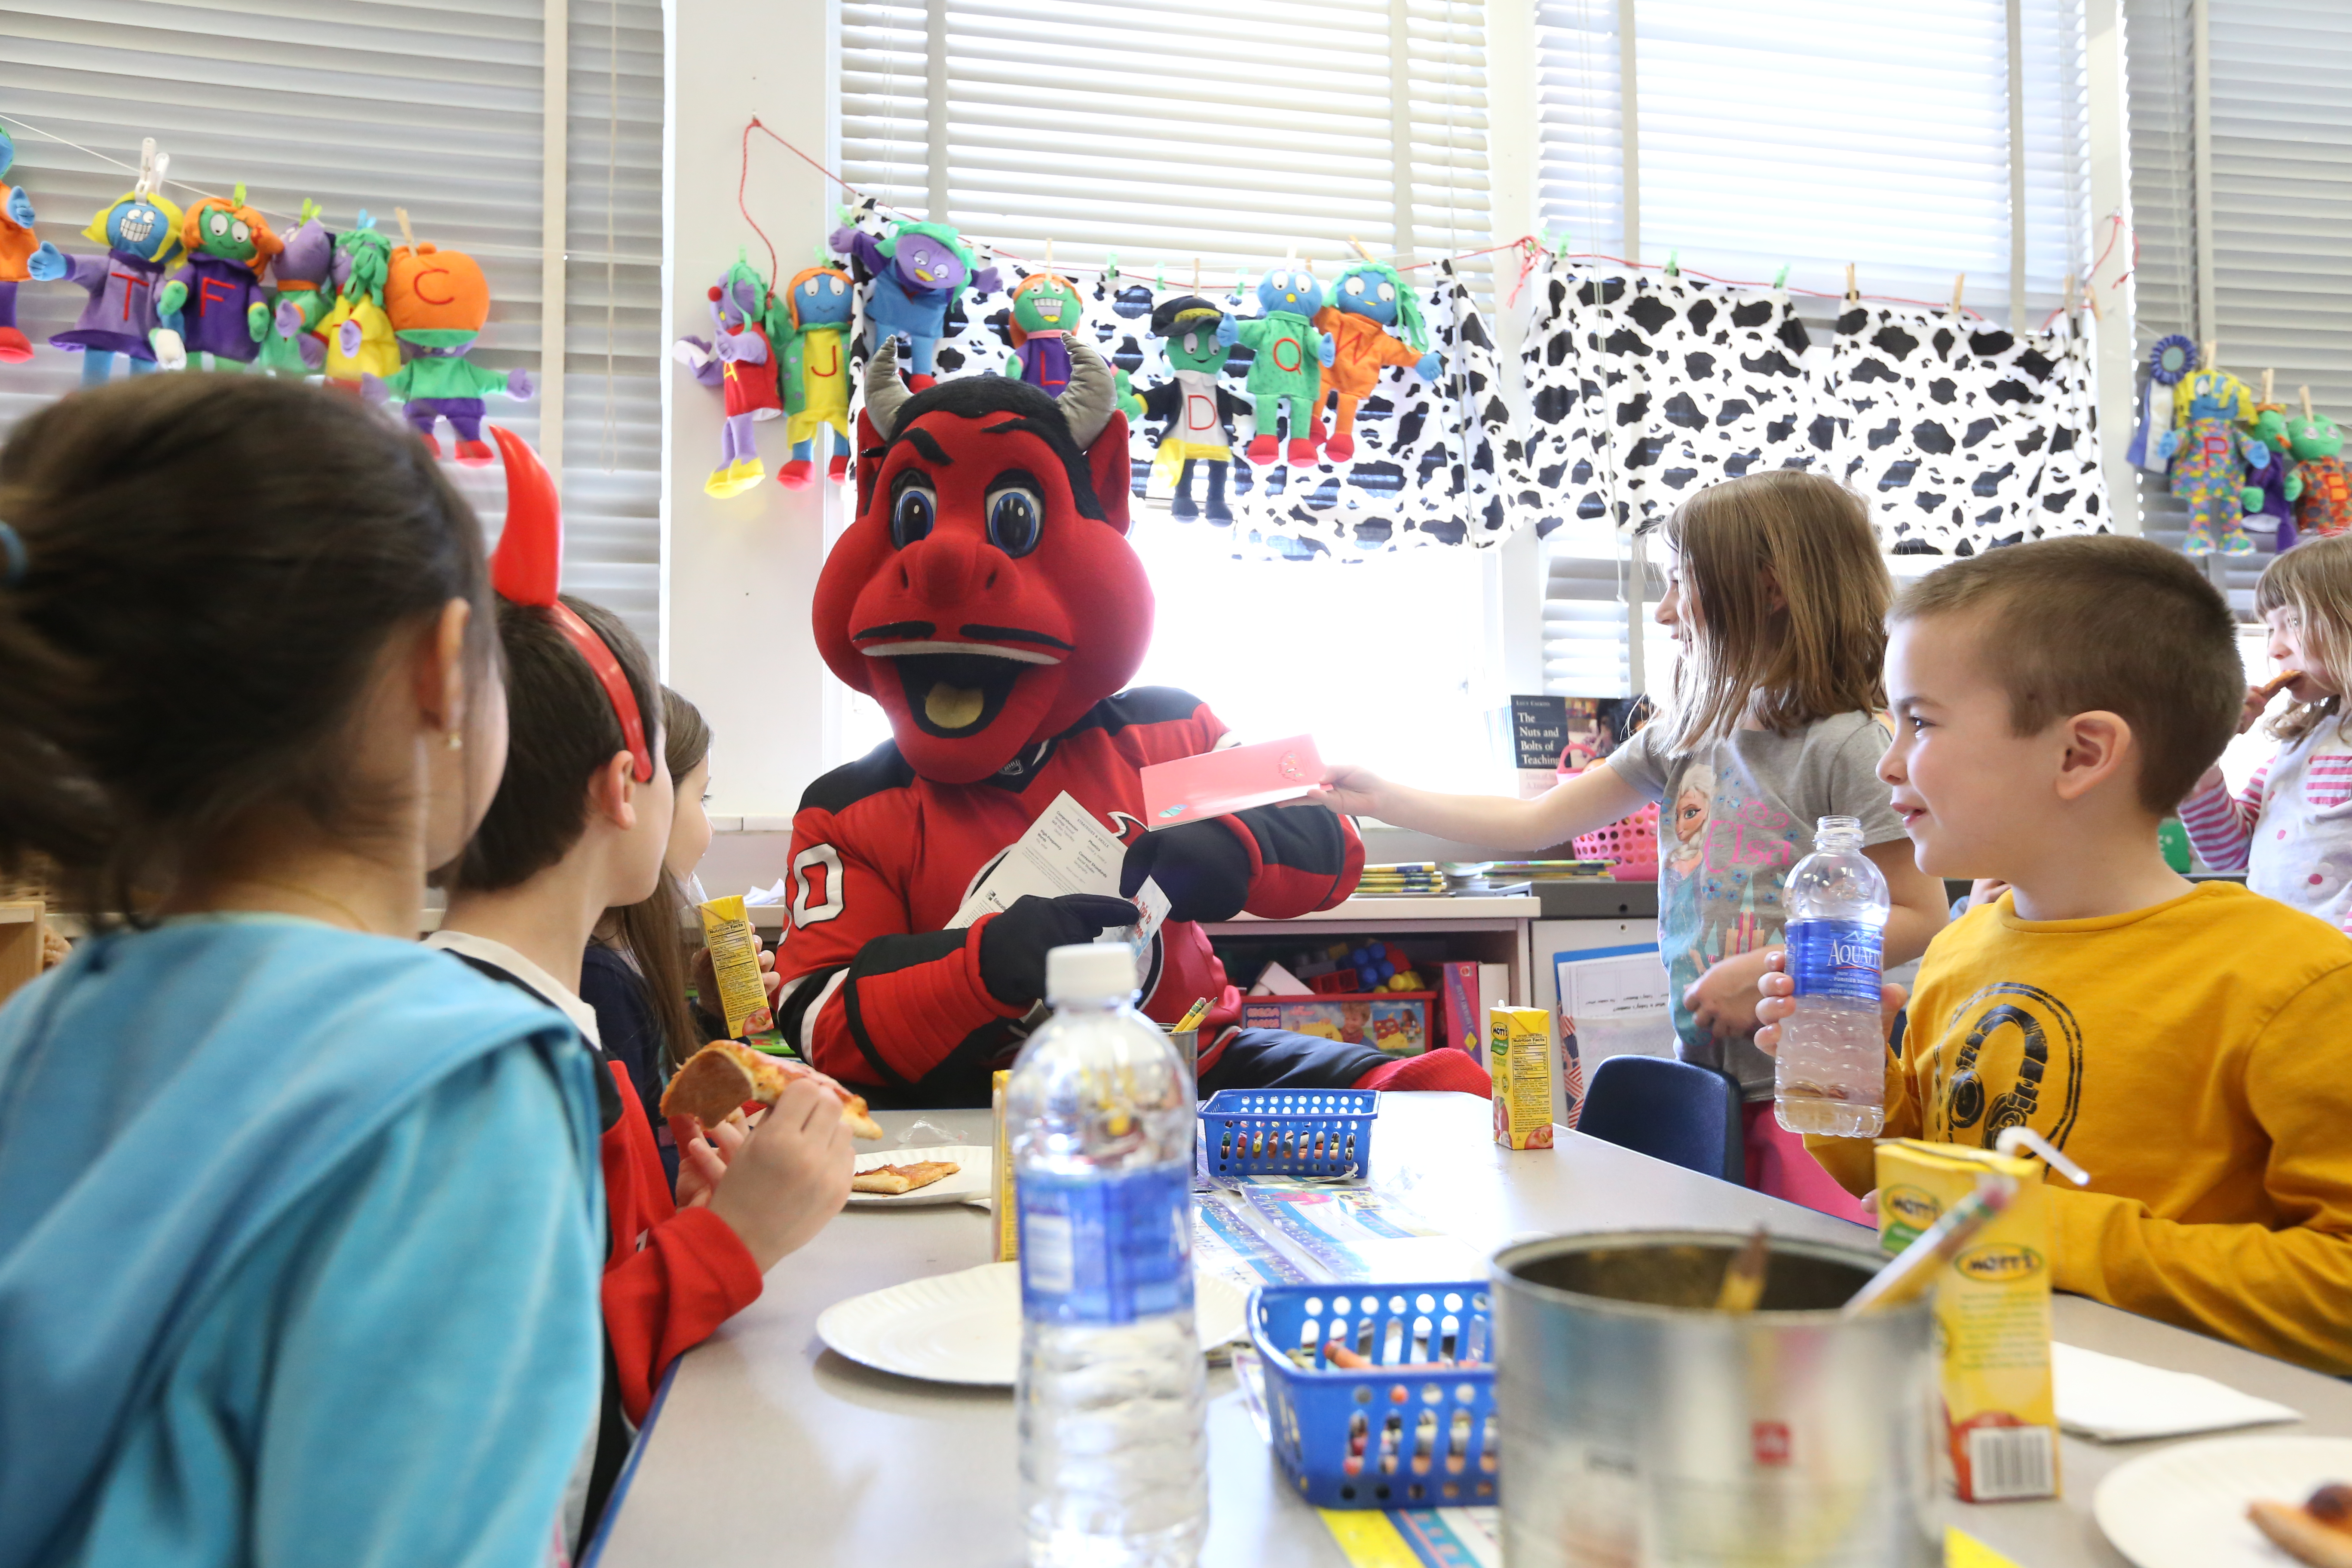 Worksheet Reading Programs For Elementary Students new jersey devils launch reading program for elementary school students madison nj news tapinto